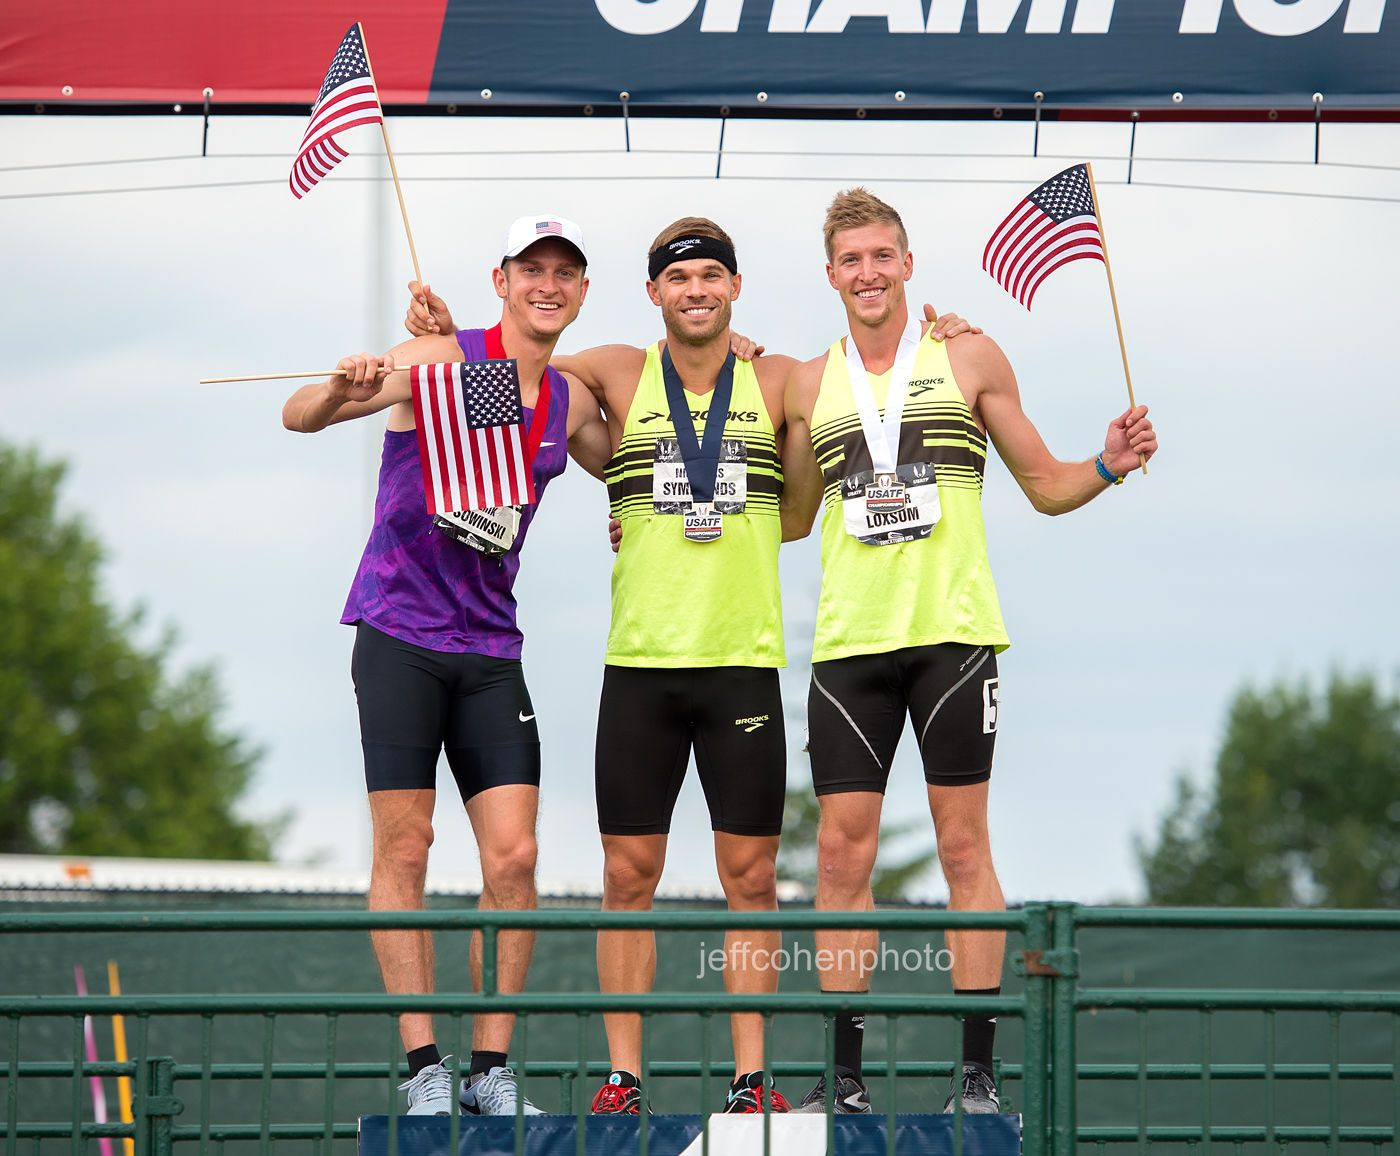 1r2015_usaoutdoors_800m_men_podiun_nick_symmonds__jeff_cohen_3393__web.jpg